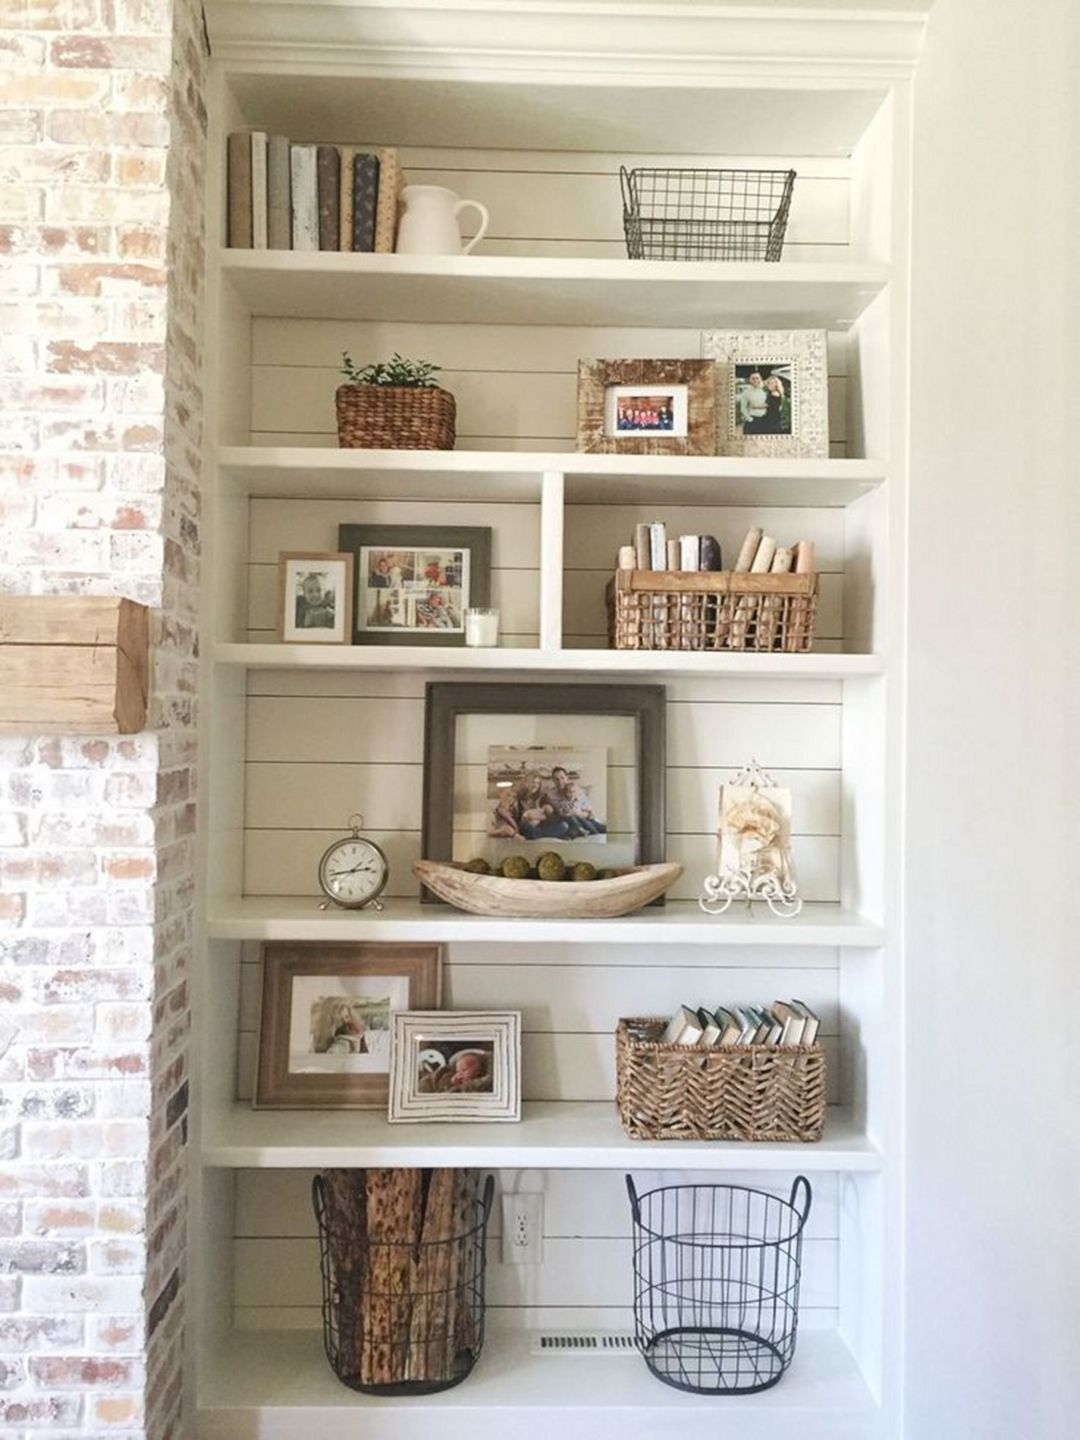 15 Best Diy Shelving Ideas As Extra Storage For Awesome Home Decoration Dexorate Living Room Shelves White Wash Brick Fireplace Bookshelves Built In